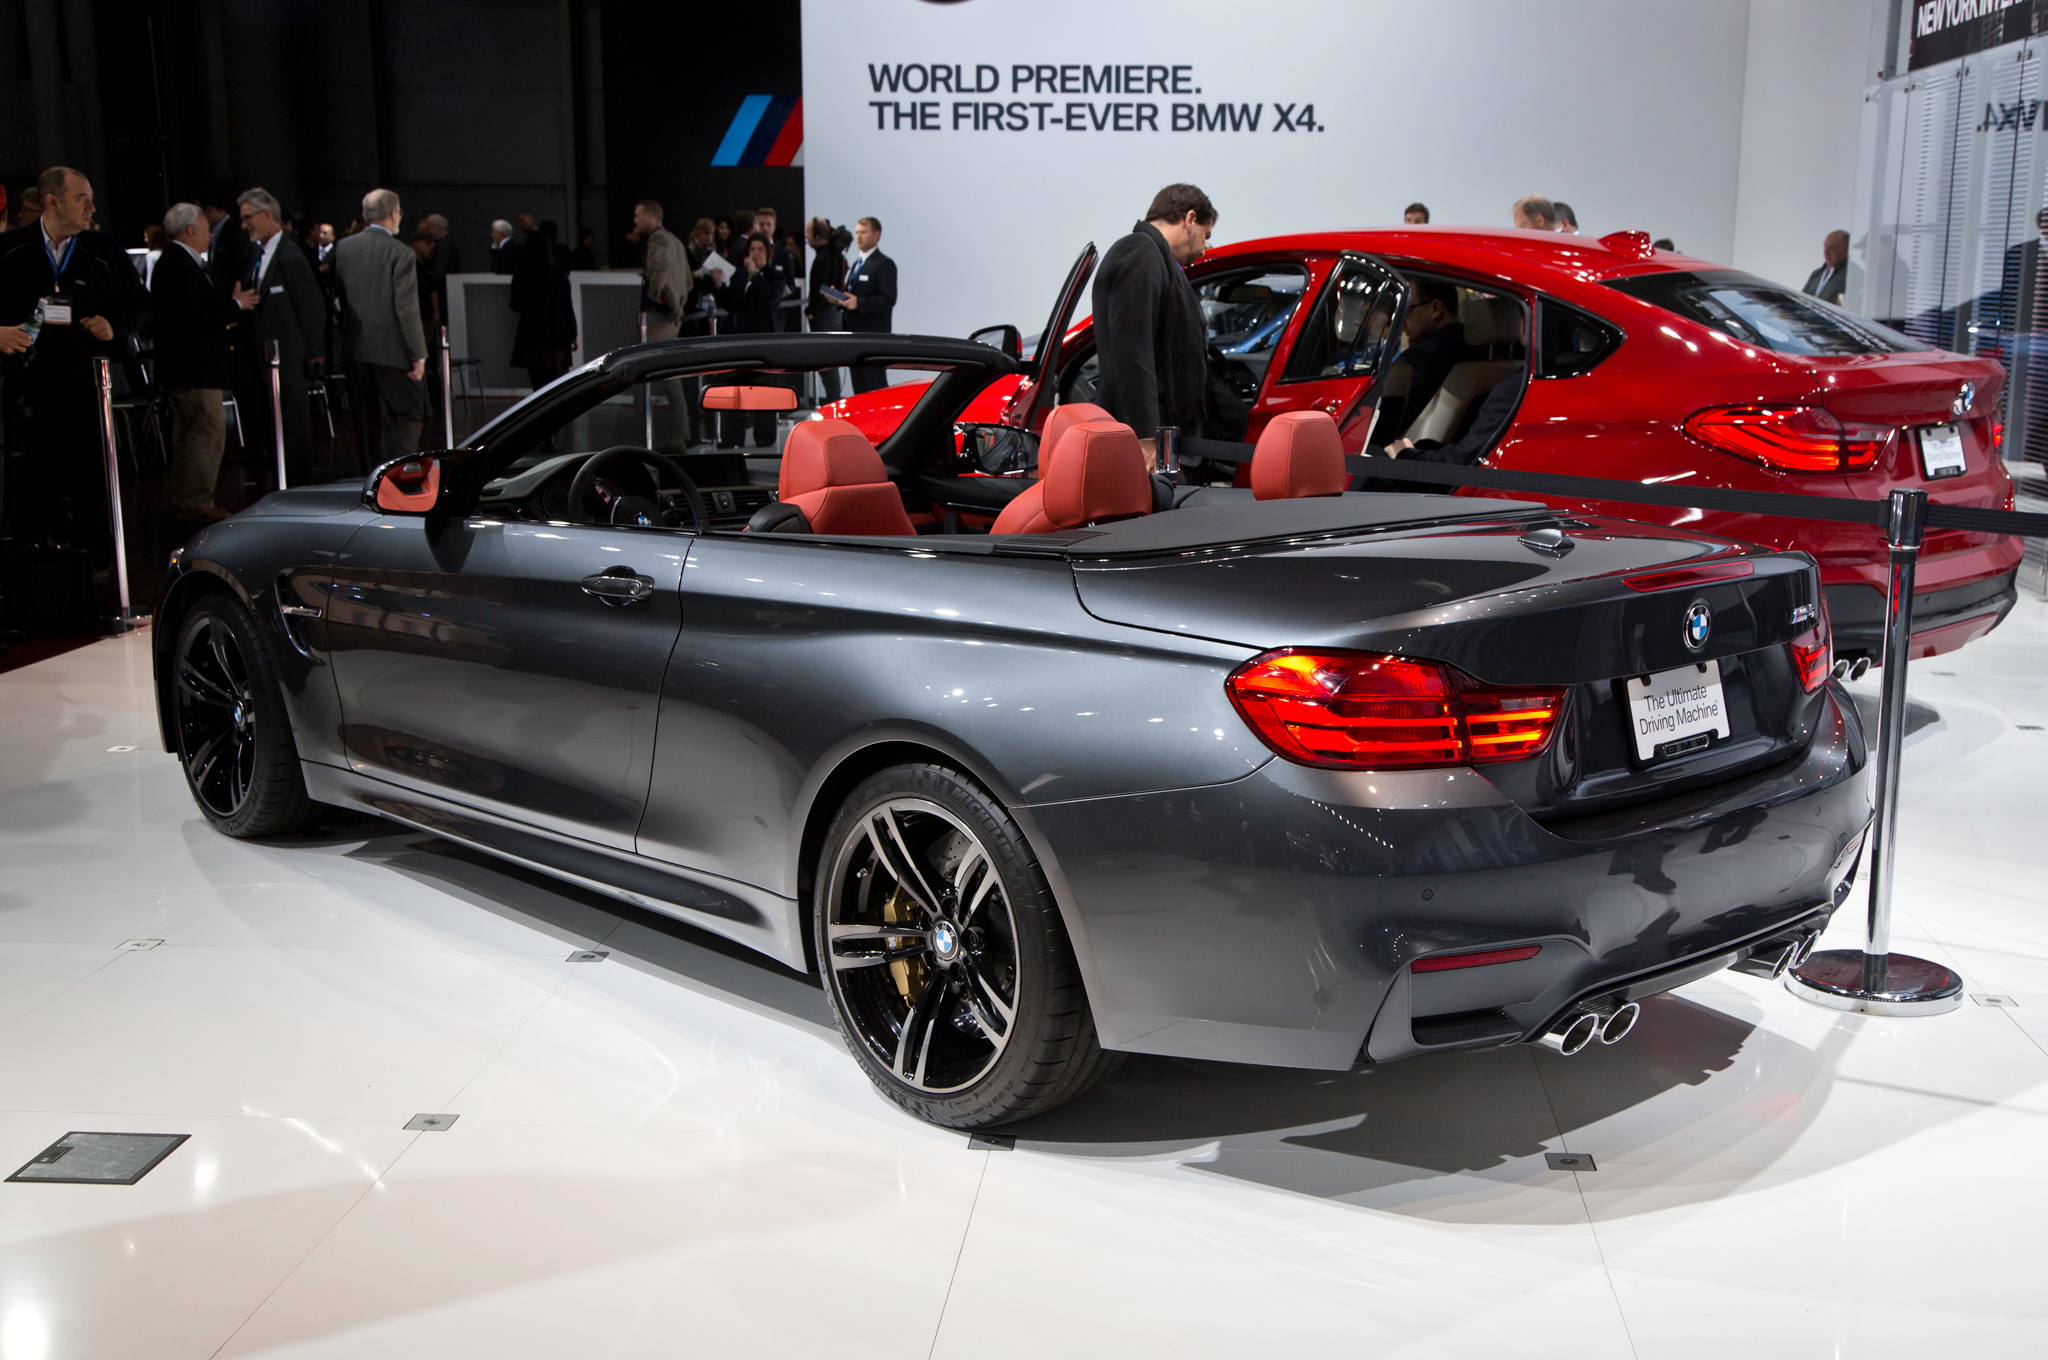 2015 Bmw M4 Convertible Rear Side Auto Show (View 13 of 50)